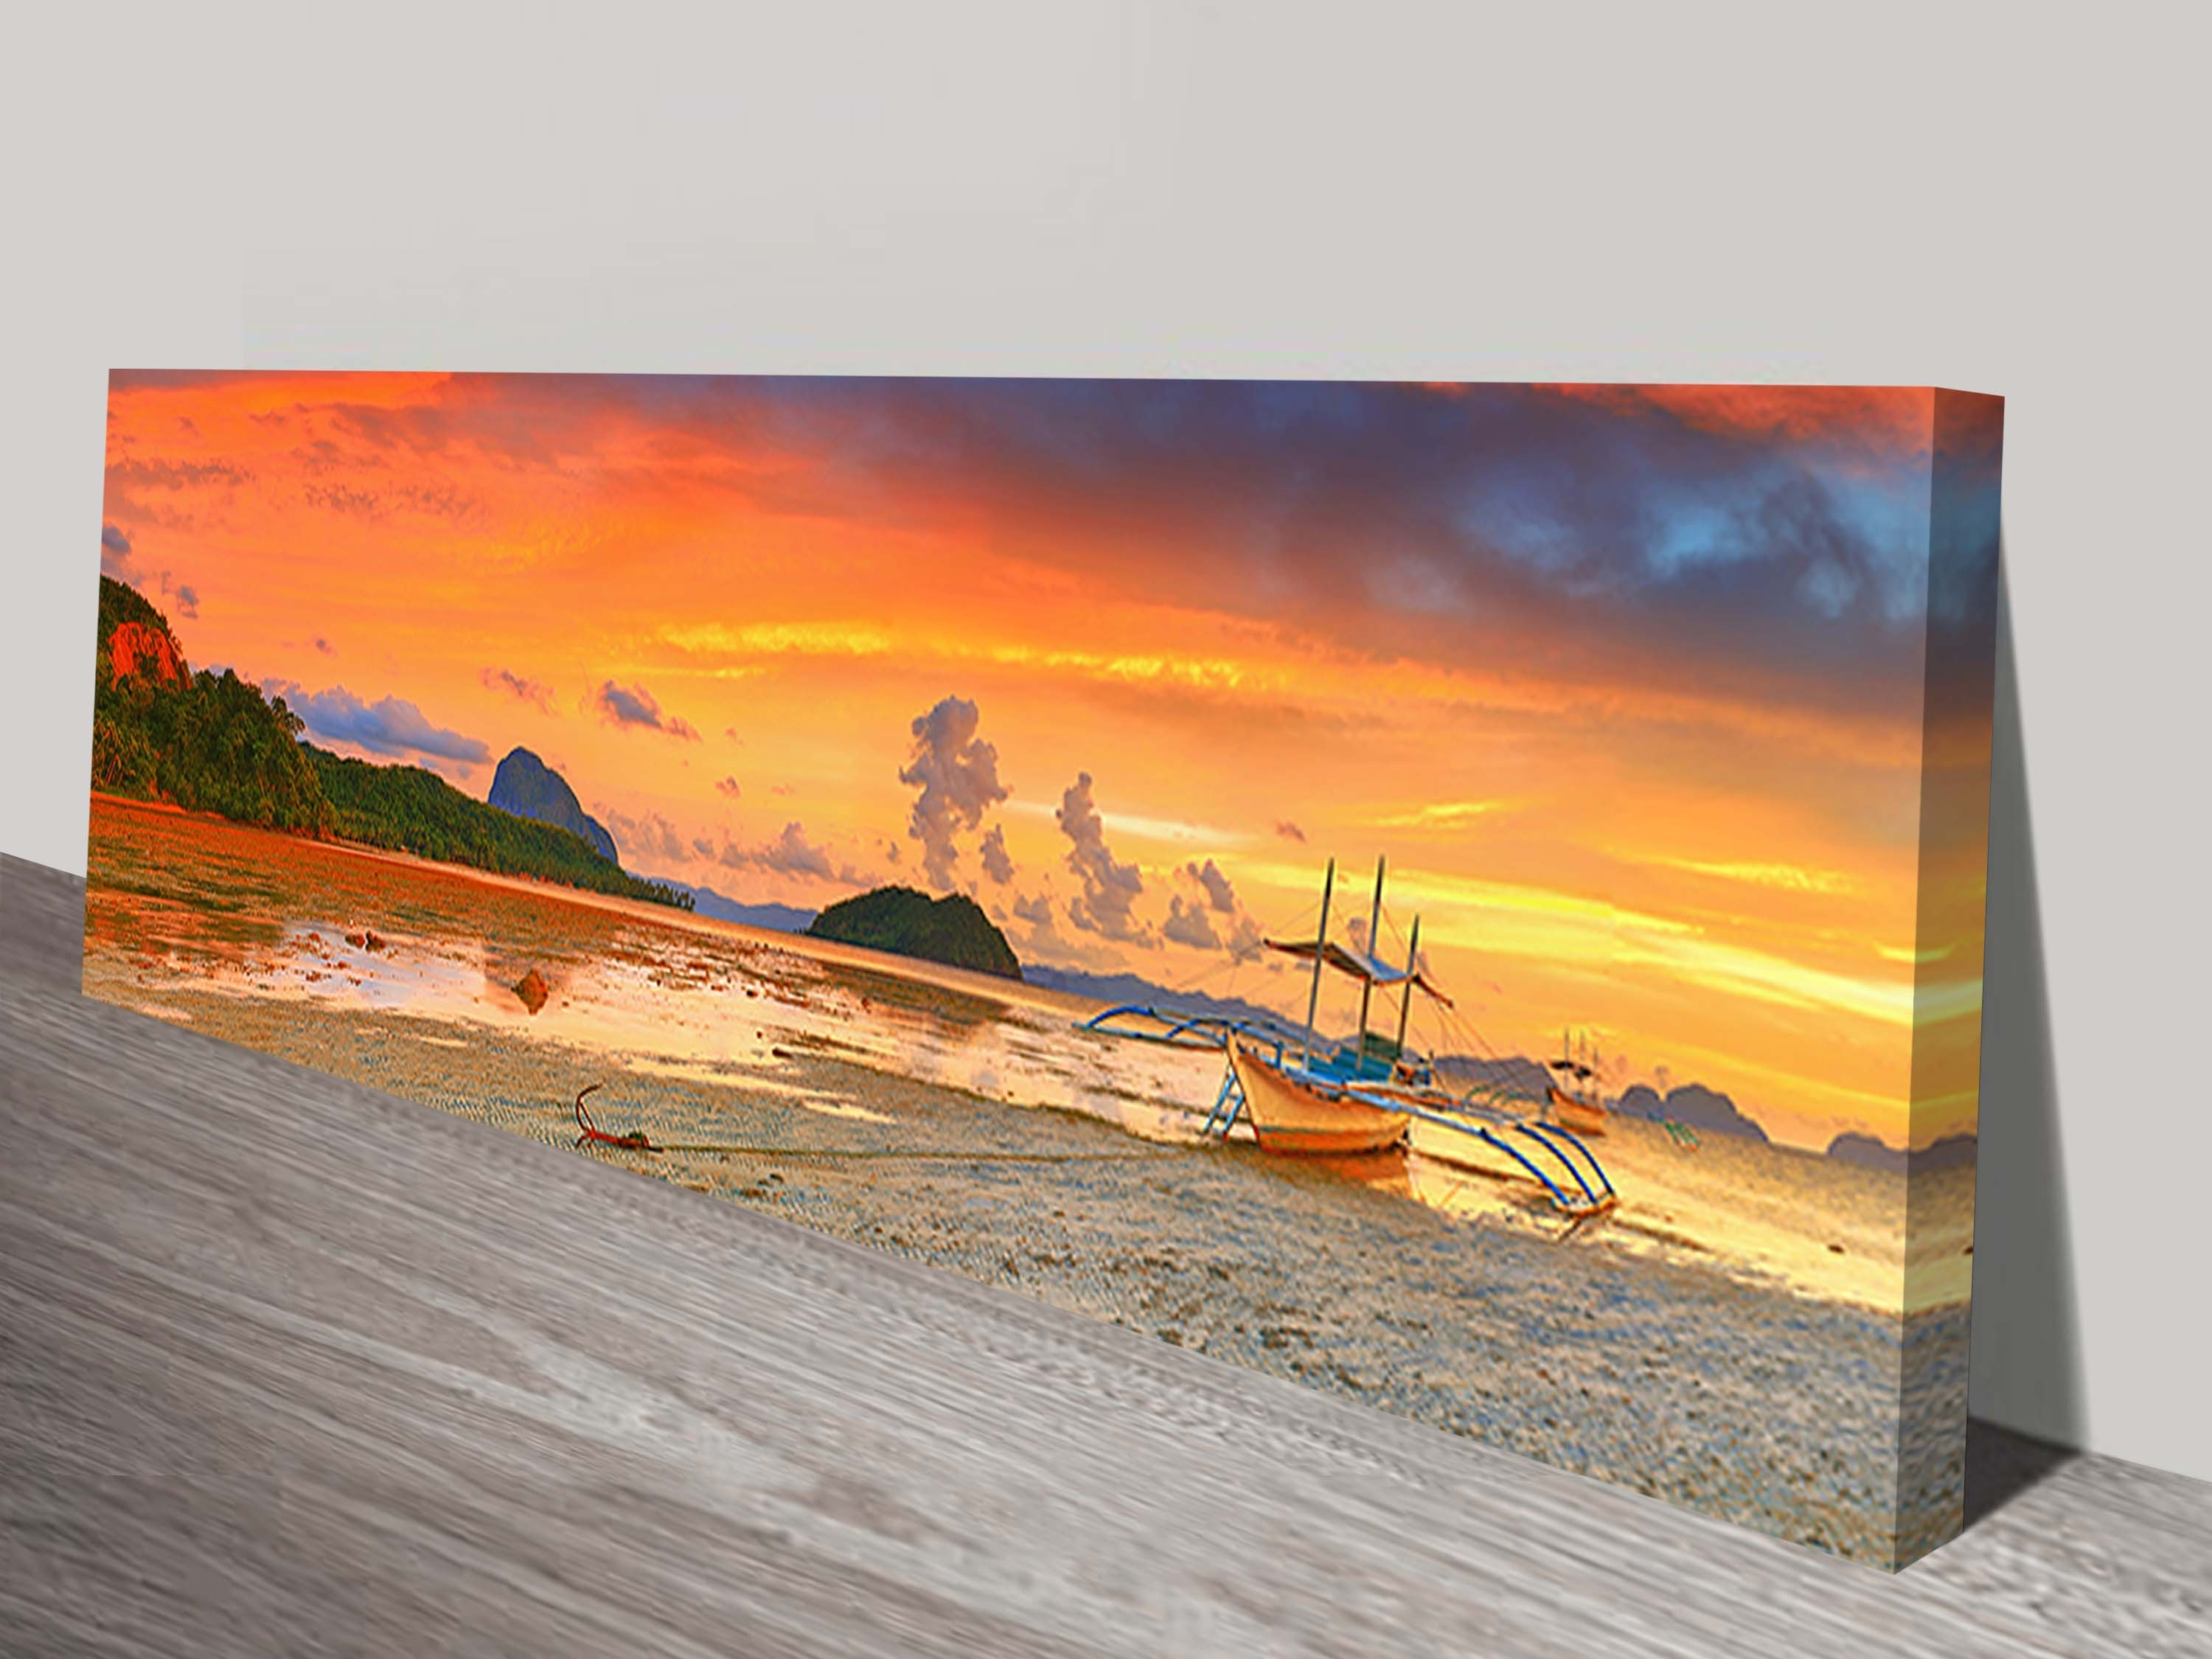 Beaches Archives – Blue Horizon Prints Intended For Latest Canvas Wall Art Of Philippines (View 6 of 15)